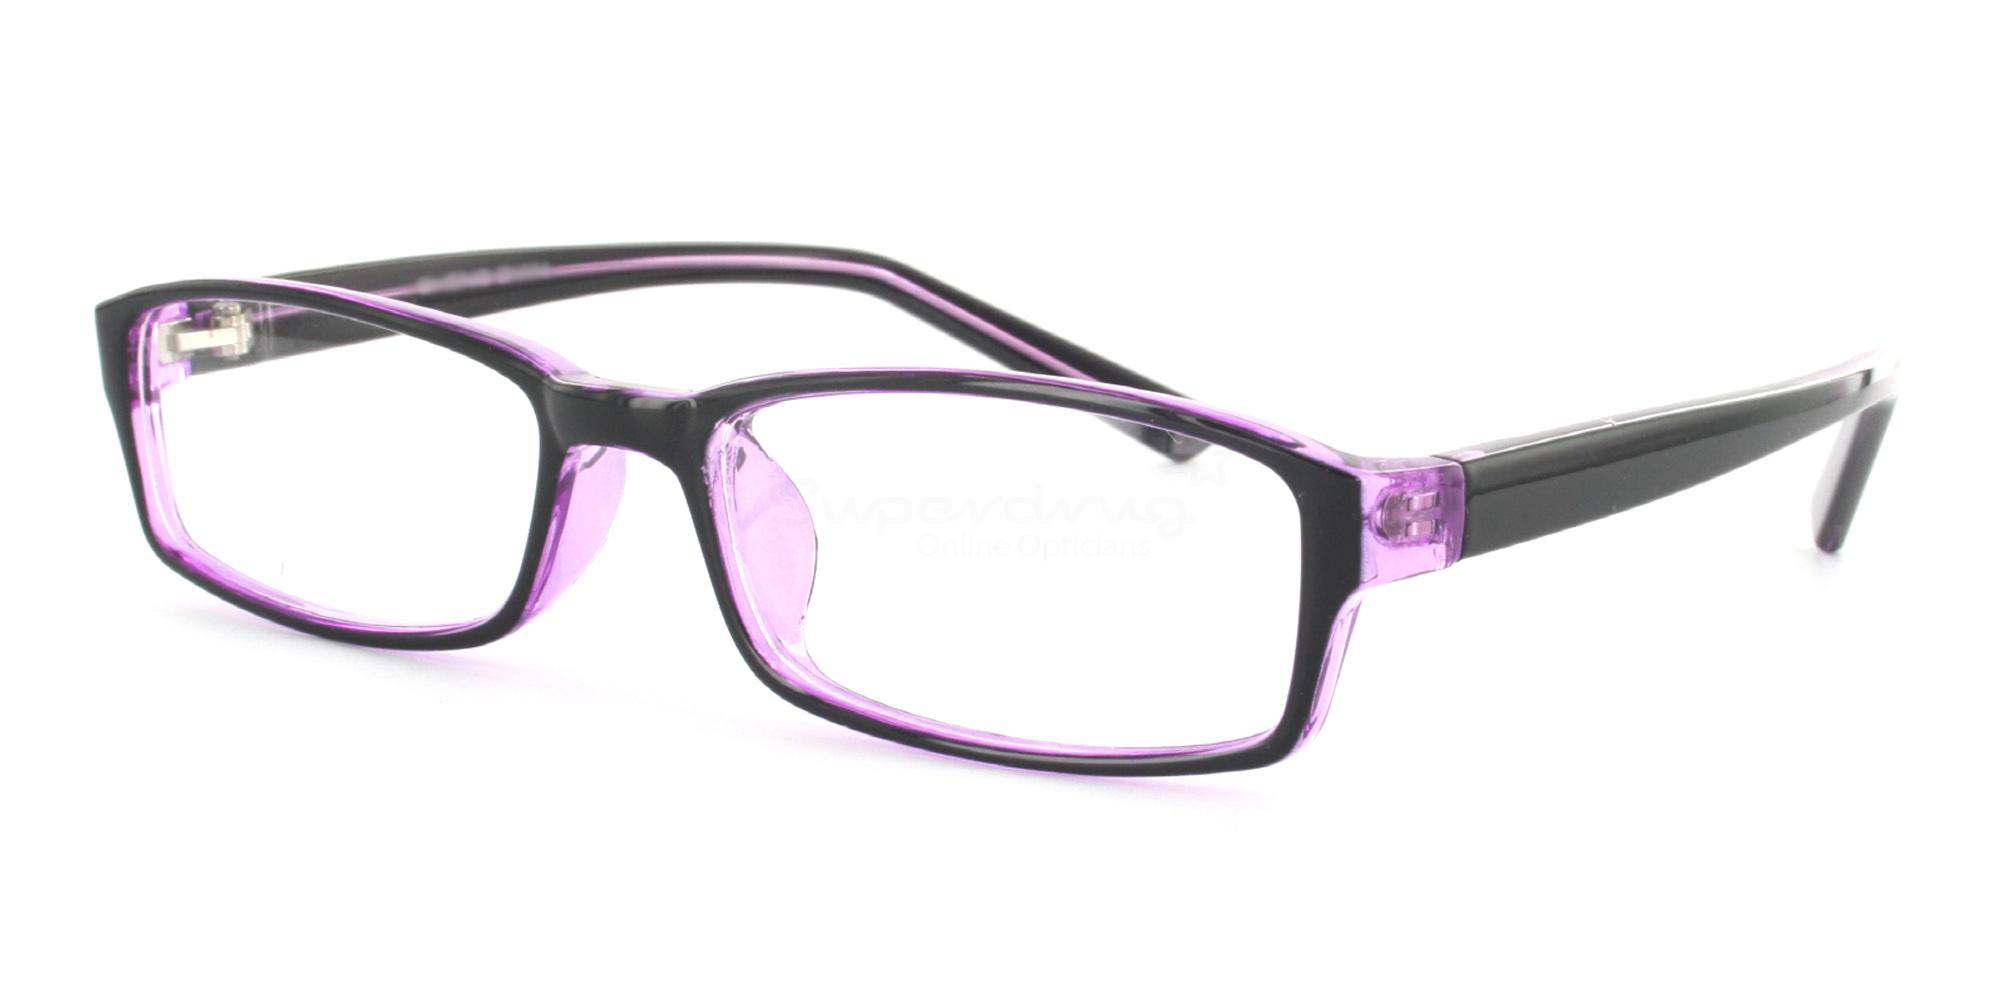 COL.44 2264 - Purple and Black Glasses, Helium